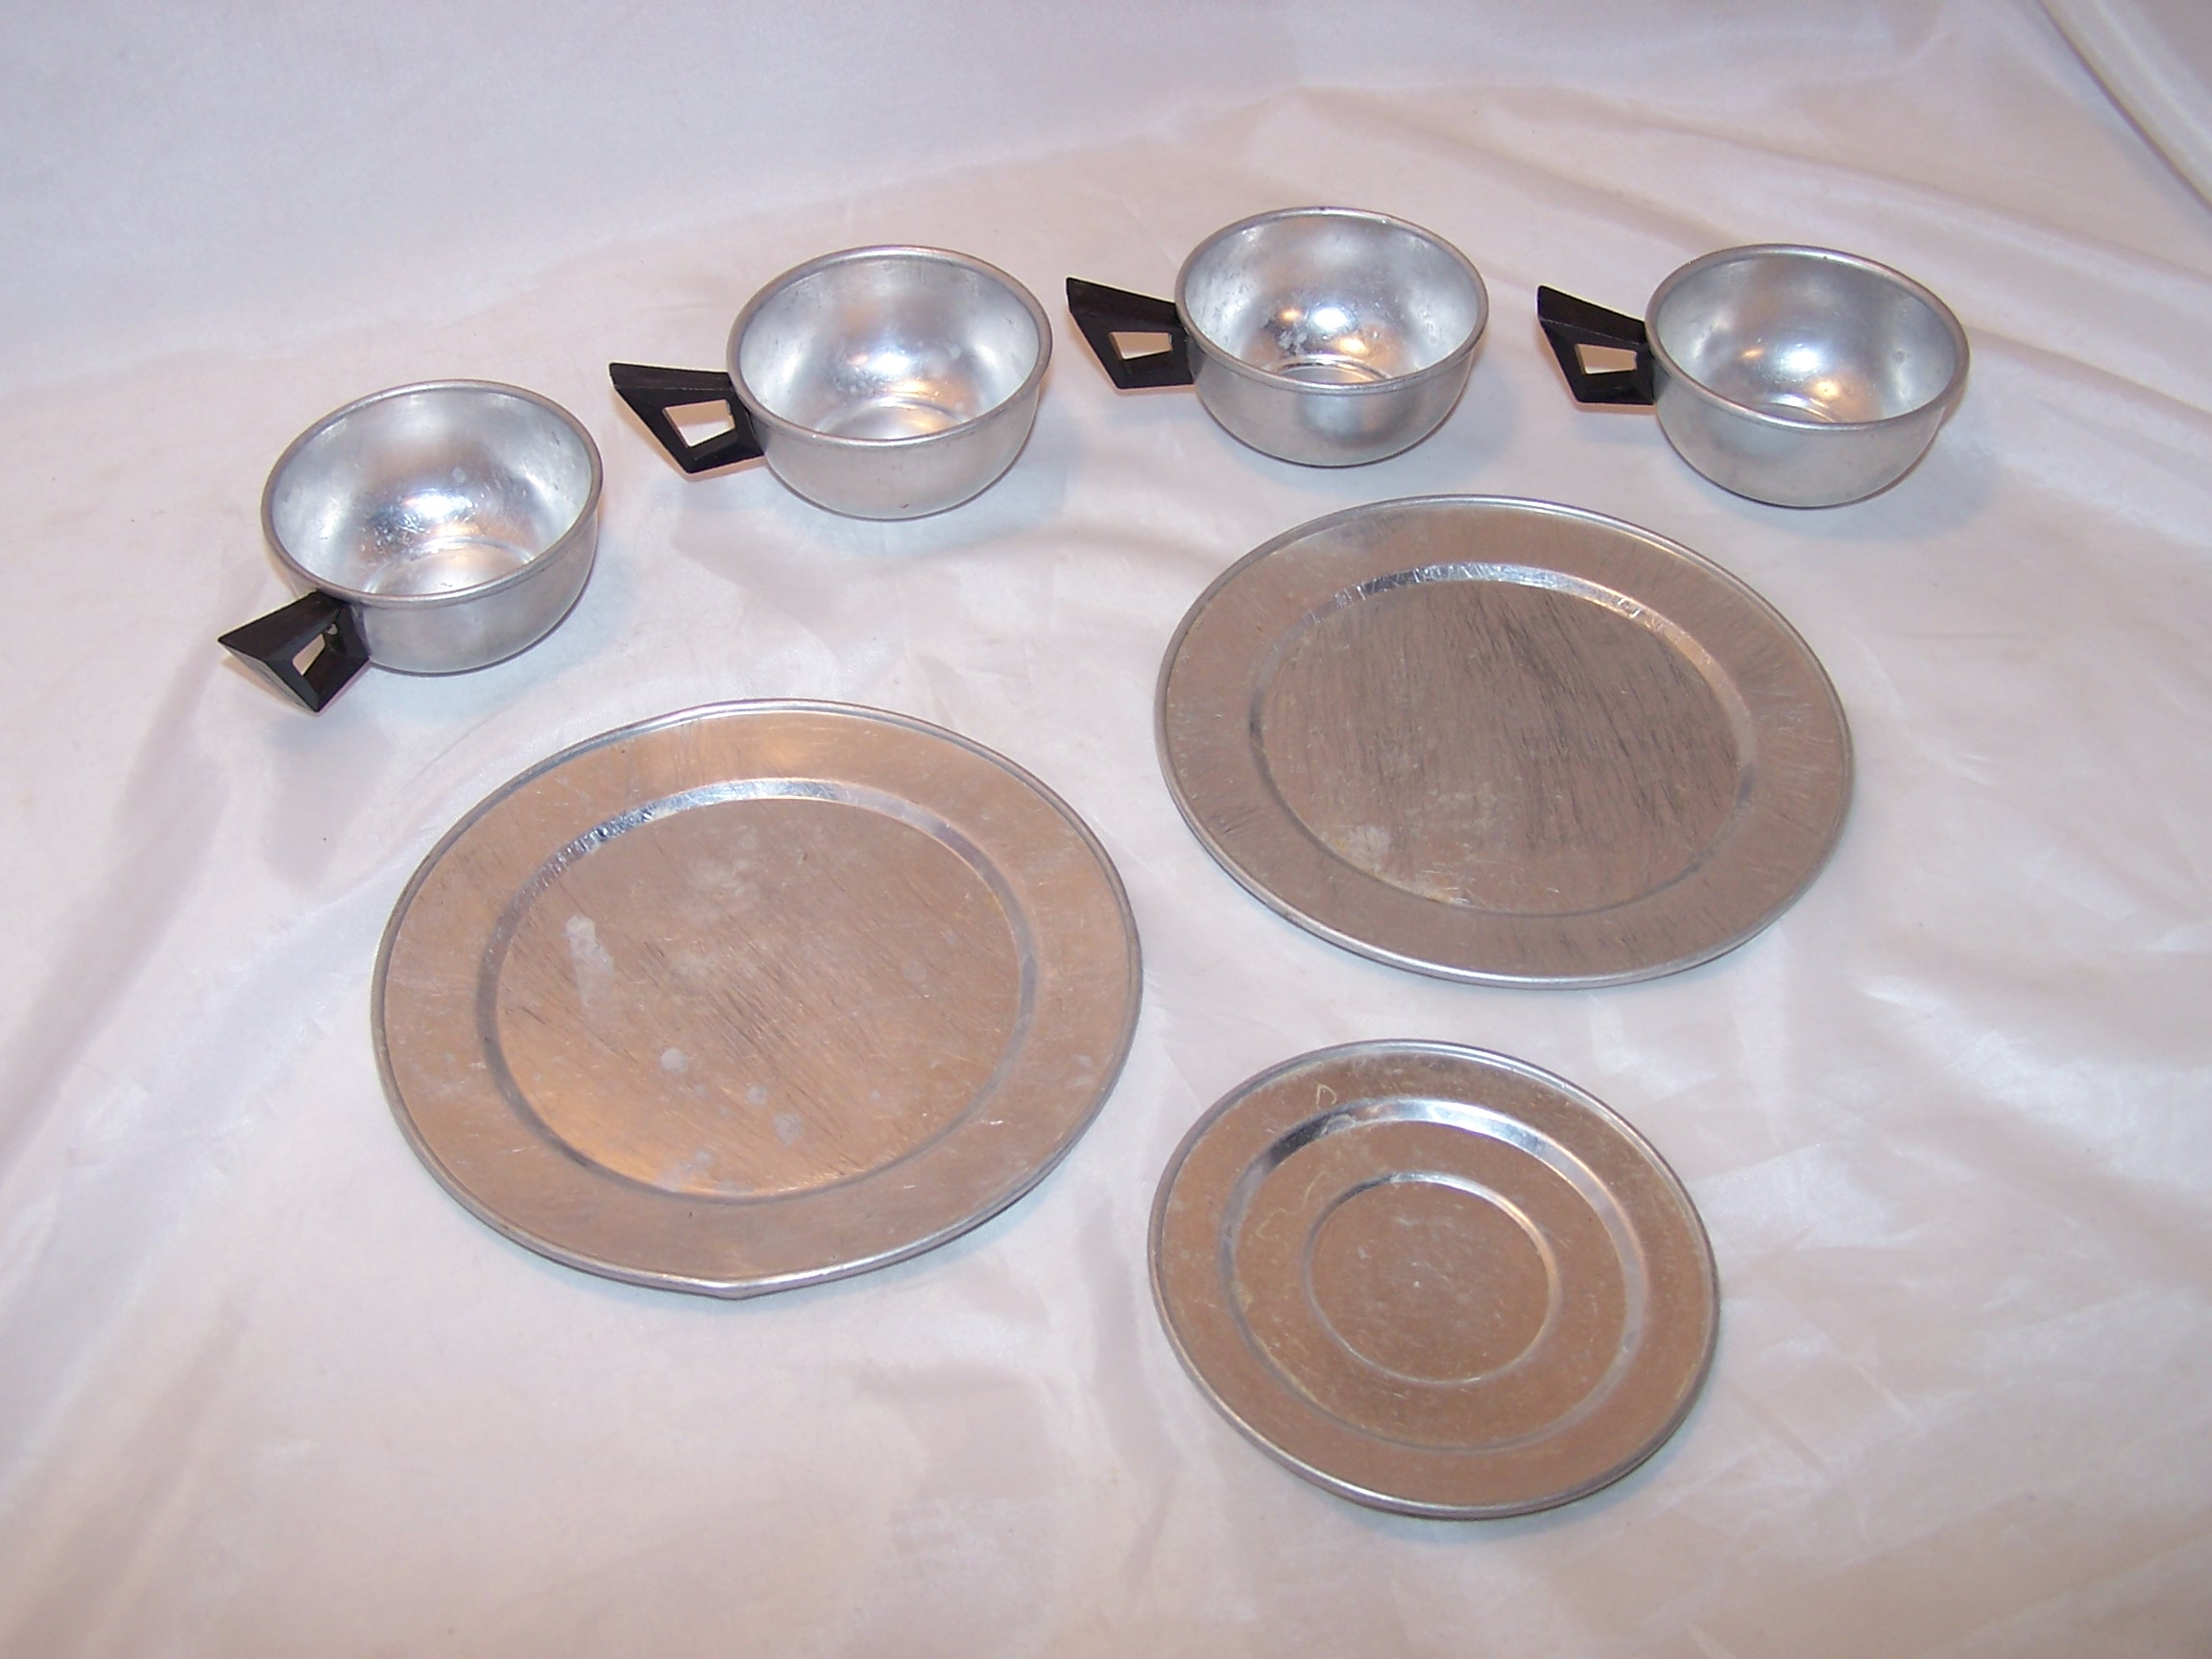 Image 1 of Toy Cups, Saucer, Plates, Aluminum, Vintage Childs Toy